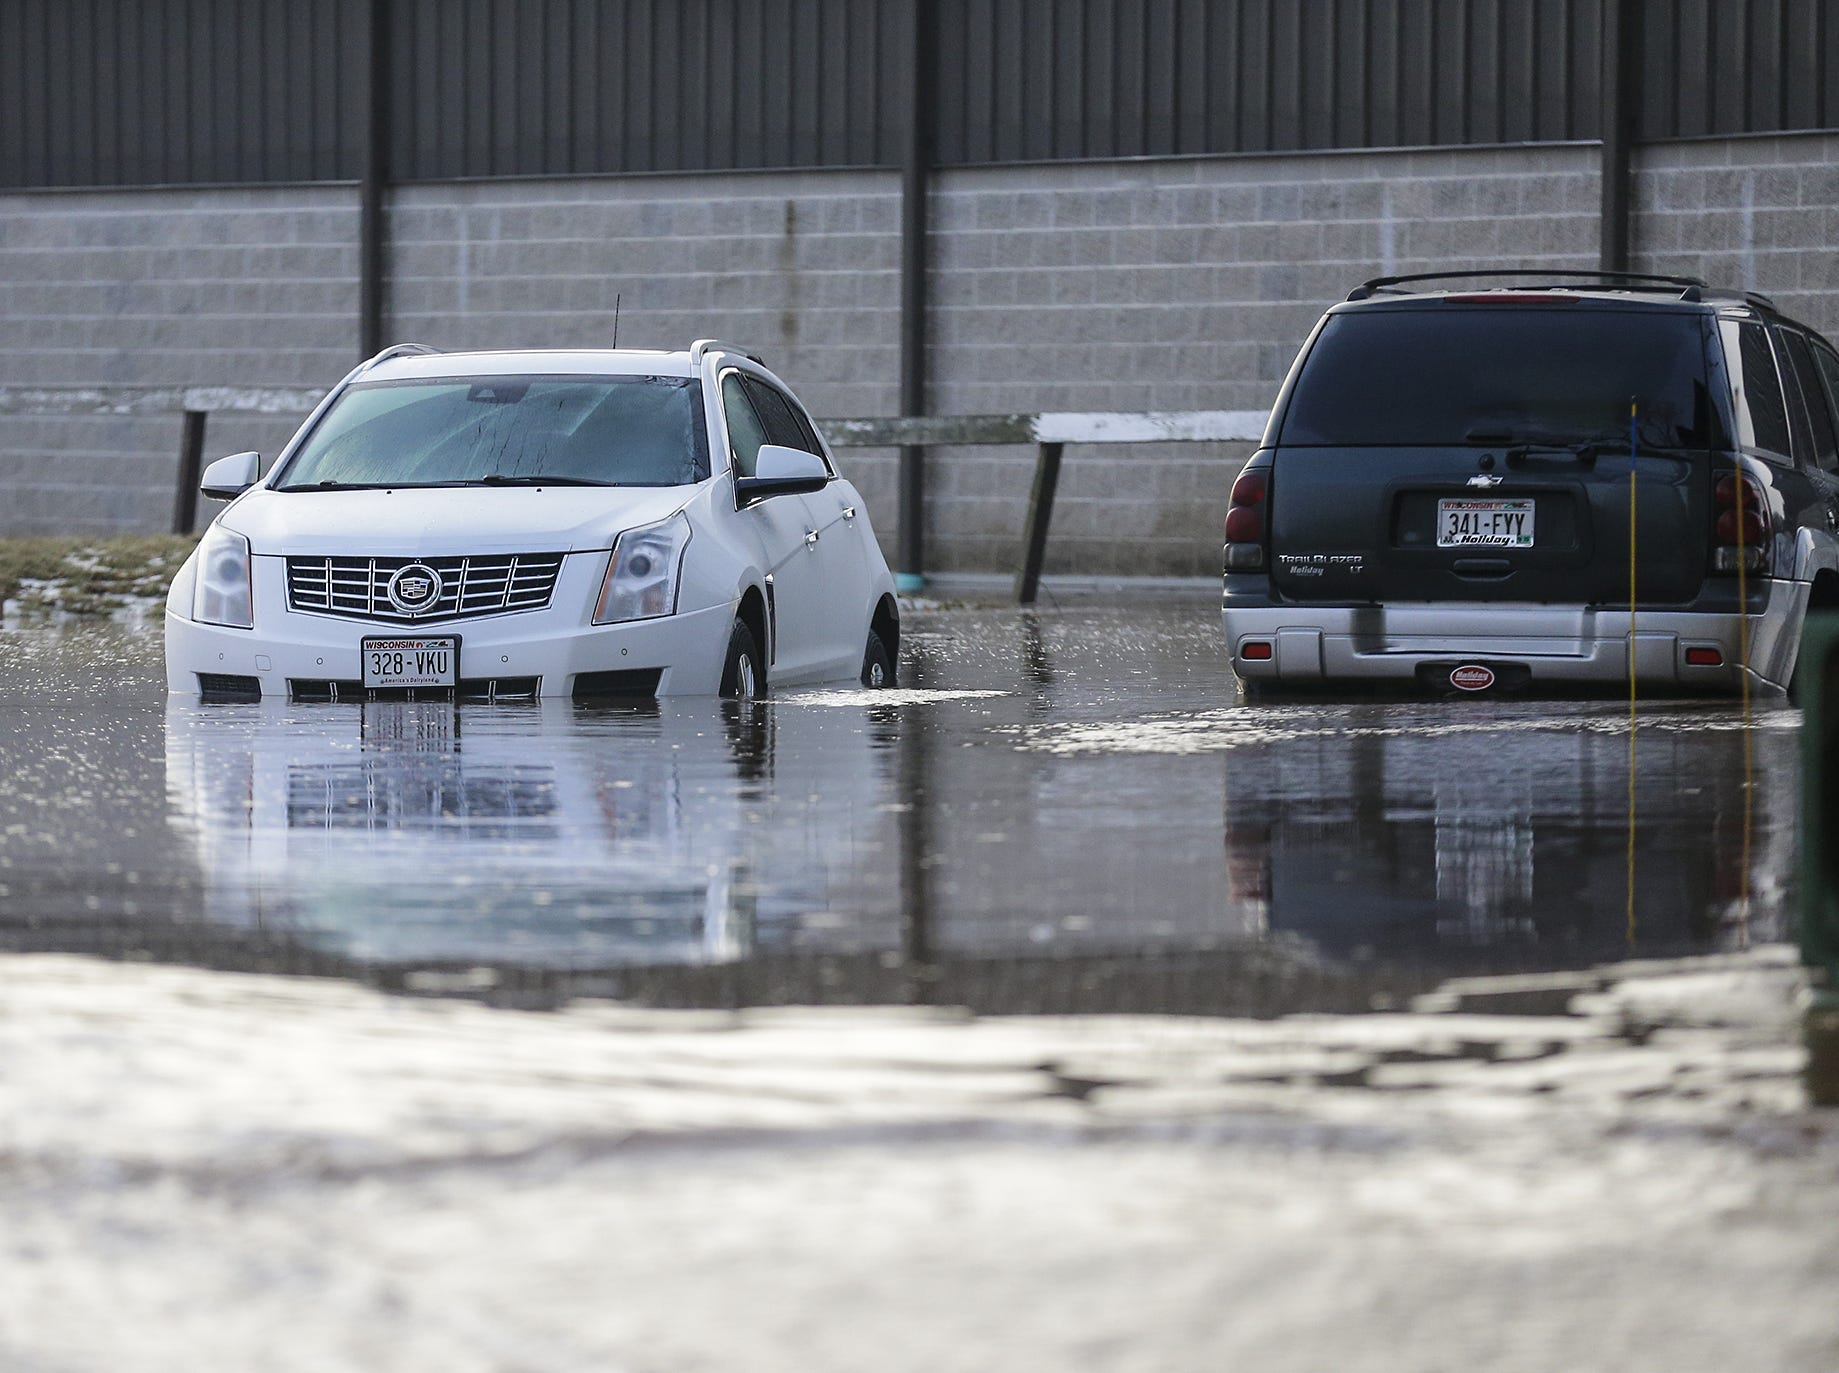 Flood waters partialy submerge cars in a driveway Thursday, March 14, 2019 on Military Road in Fond du Lac, Wis. Ice jams on the east branch of the Fond du Lac River caused localized flooding problems in the city. Doug Raflik/USA TODAY NETWORK-Wisconsin